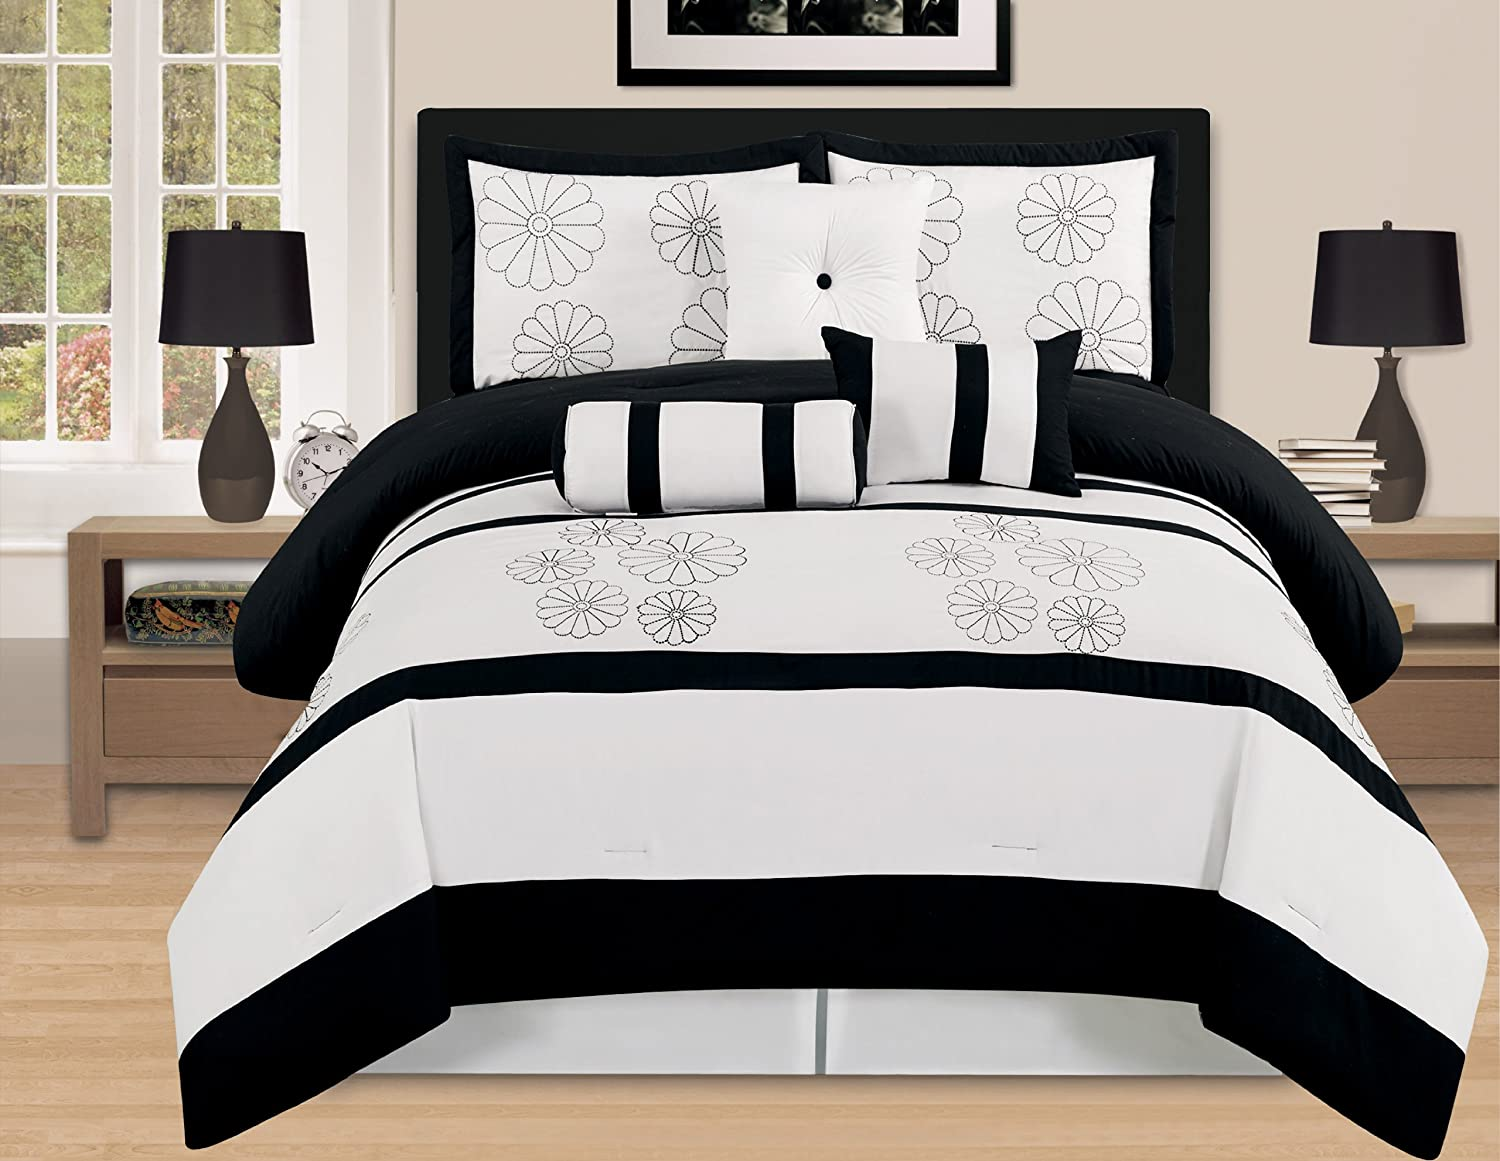 WPM/AHF 7-Piece Embroidery Queen Comforter Set, Black and White